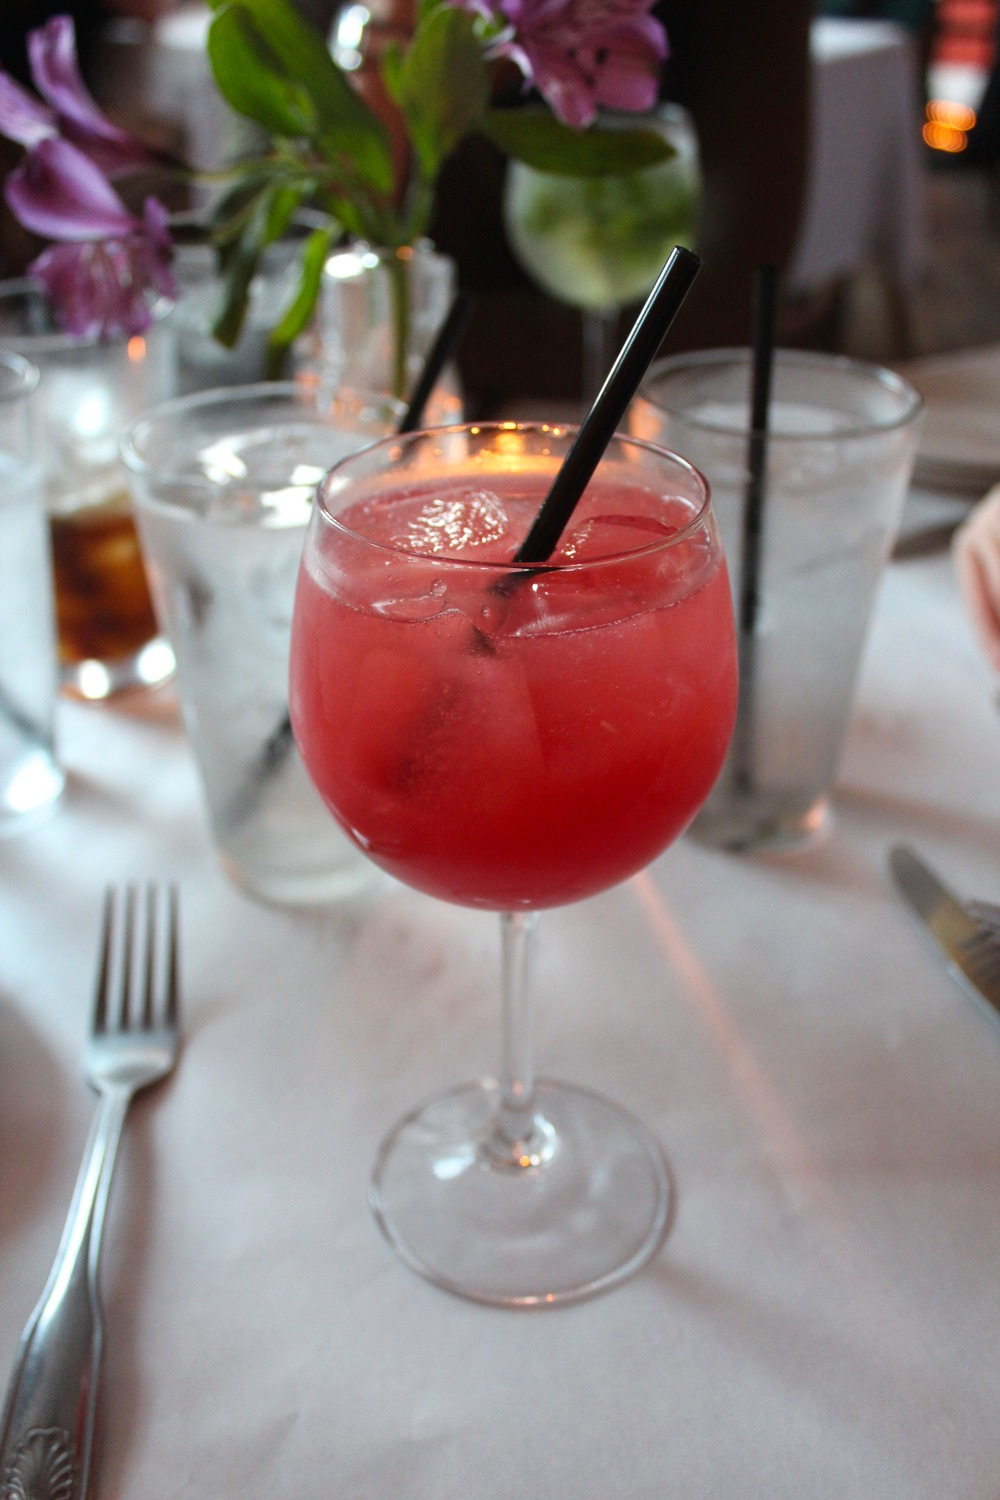 Sobo's watermelon crush, made with fresh watermelon and pinot grigio